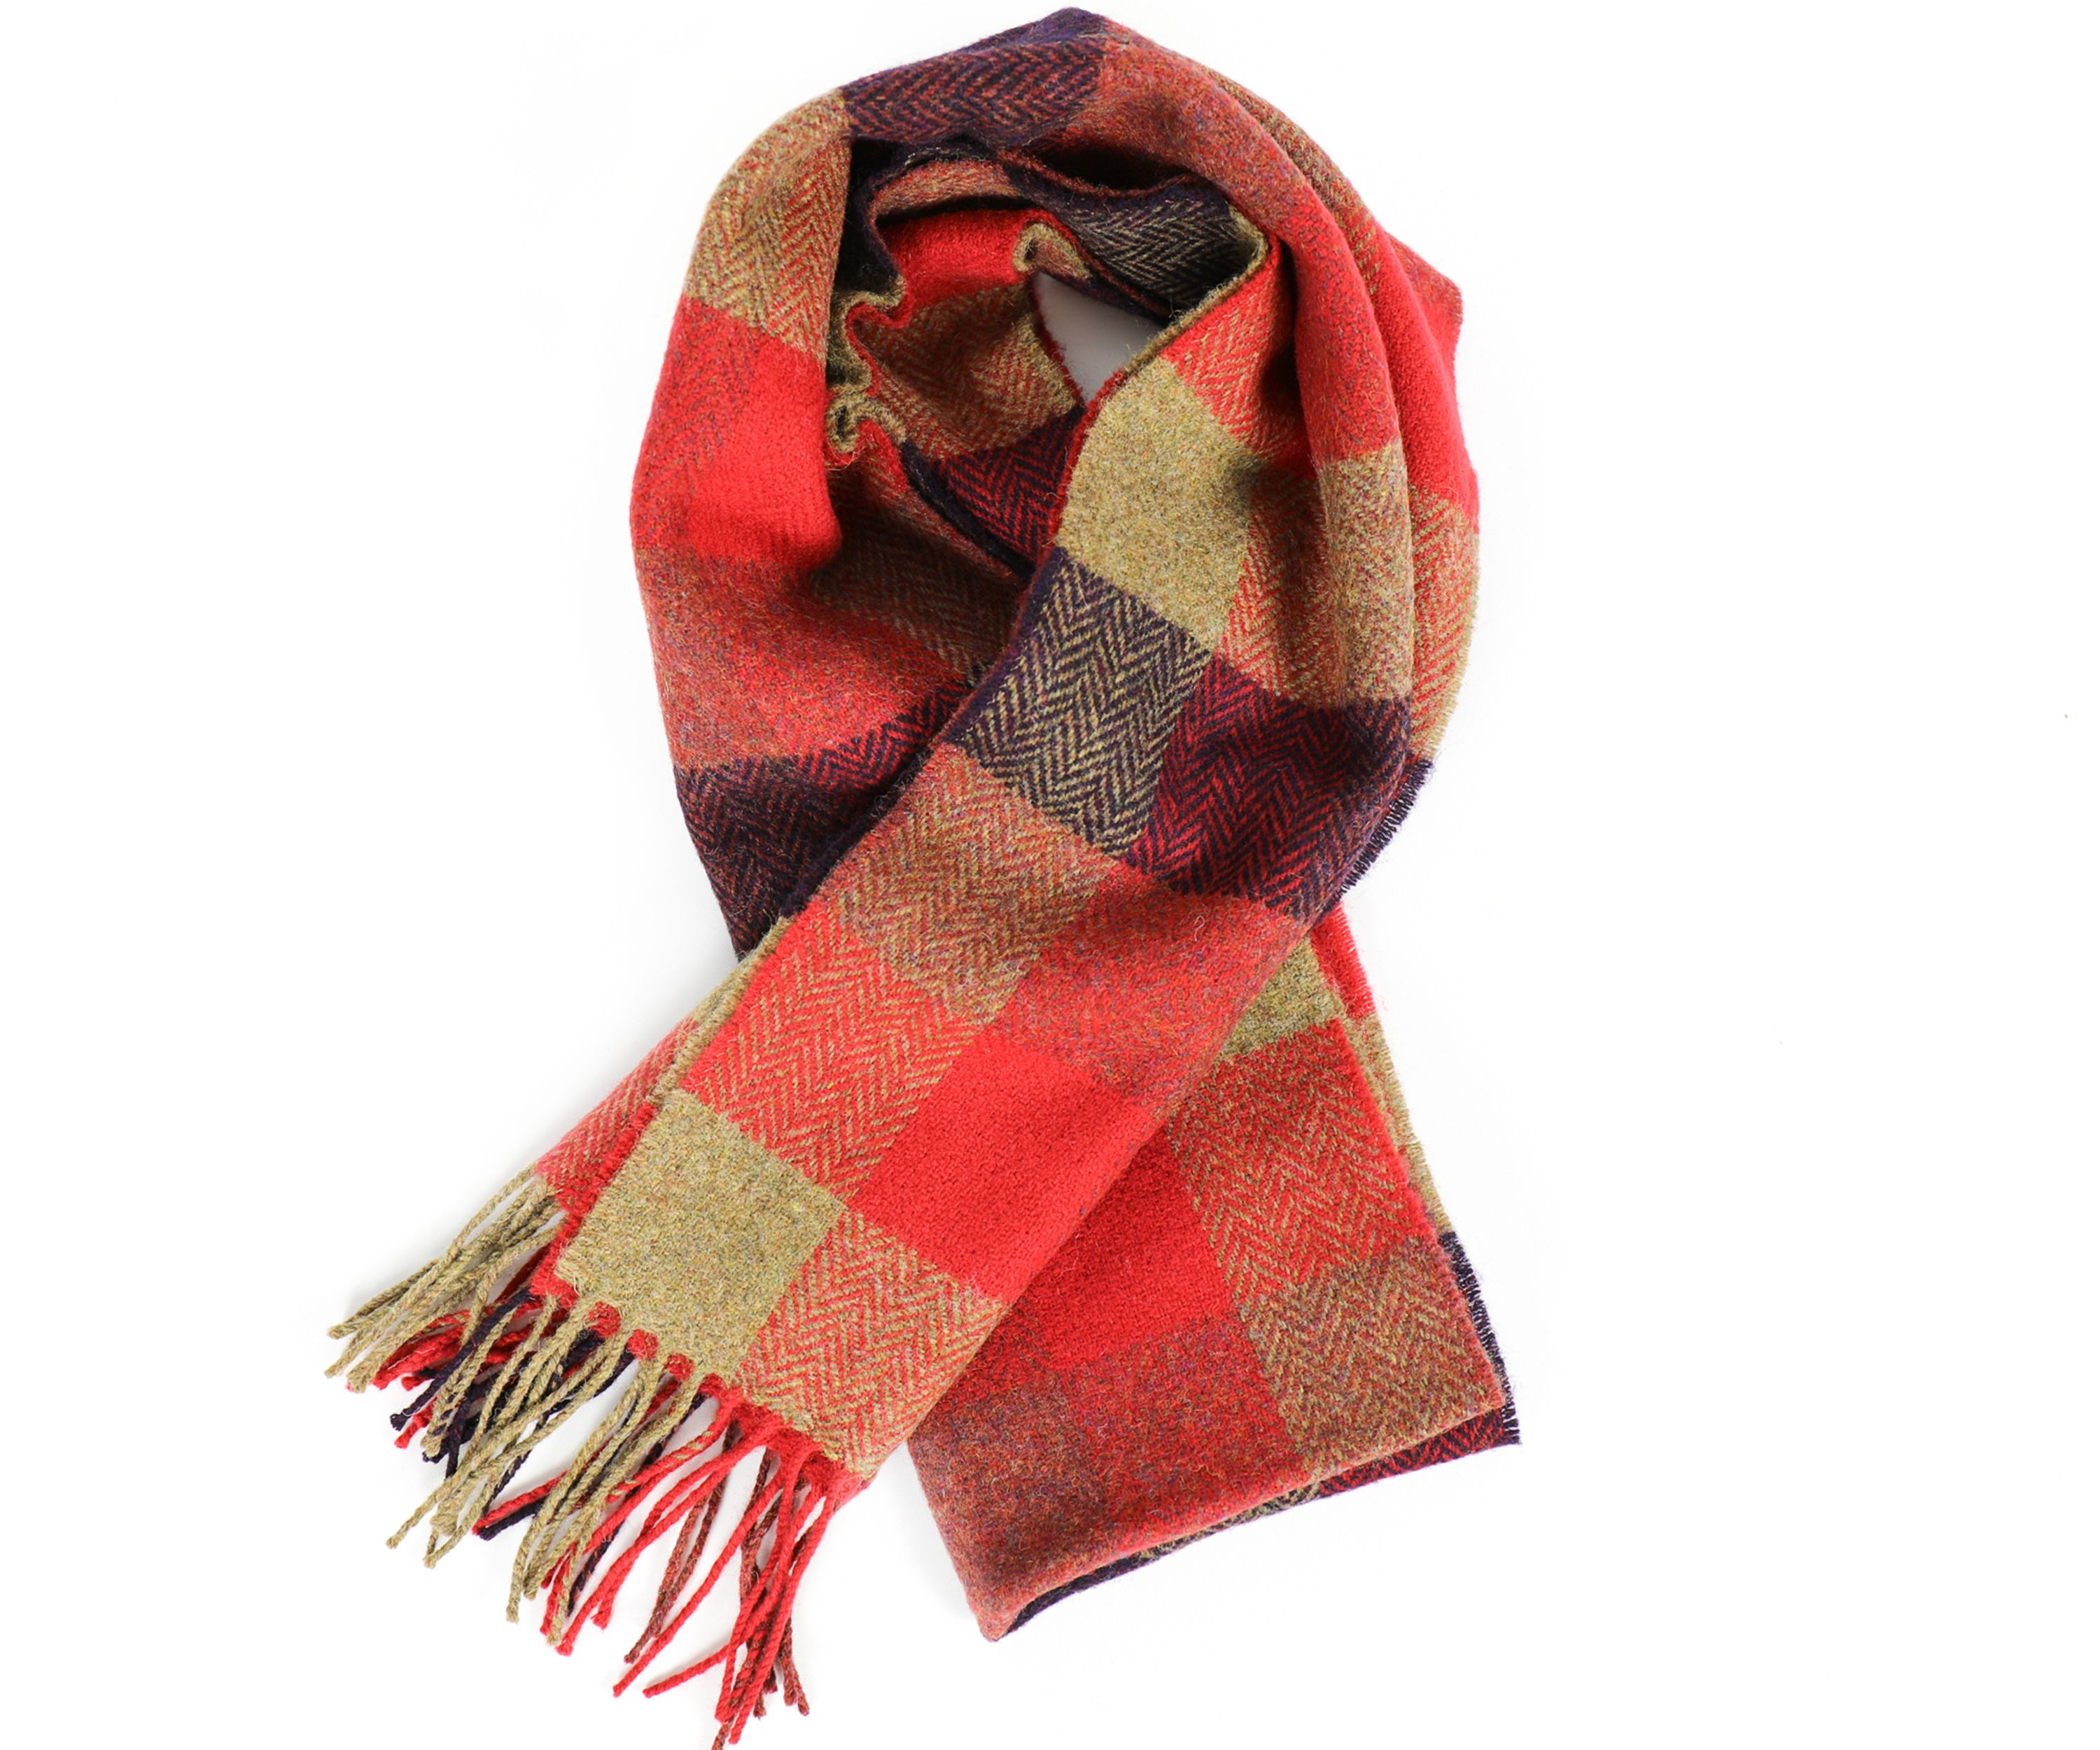 b4100280580a2 Foxford Woollen Mills Men's Check Lambswool Scarf in Red / Brown / Blue -  Beautiful Linens